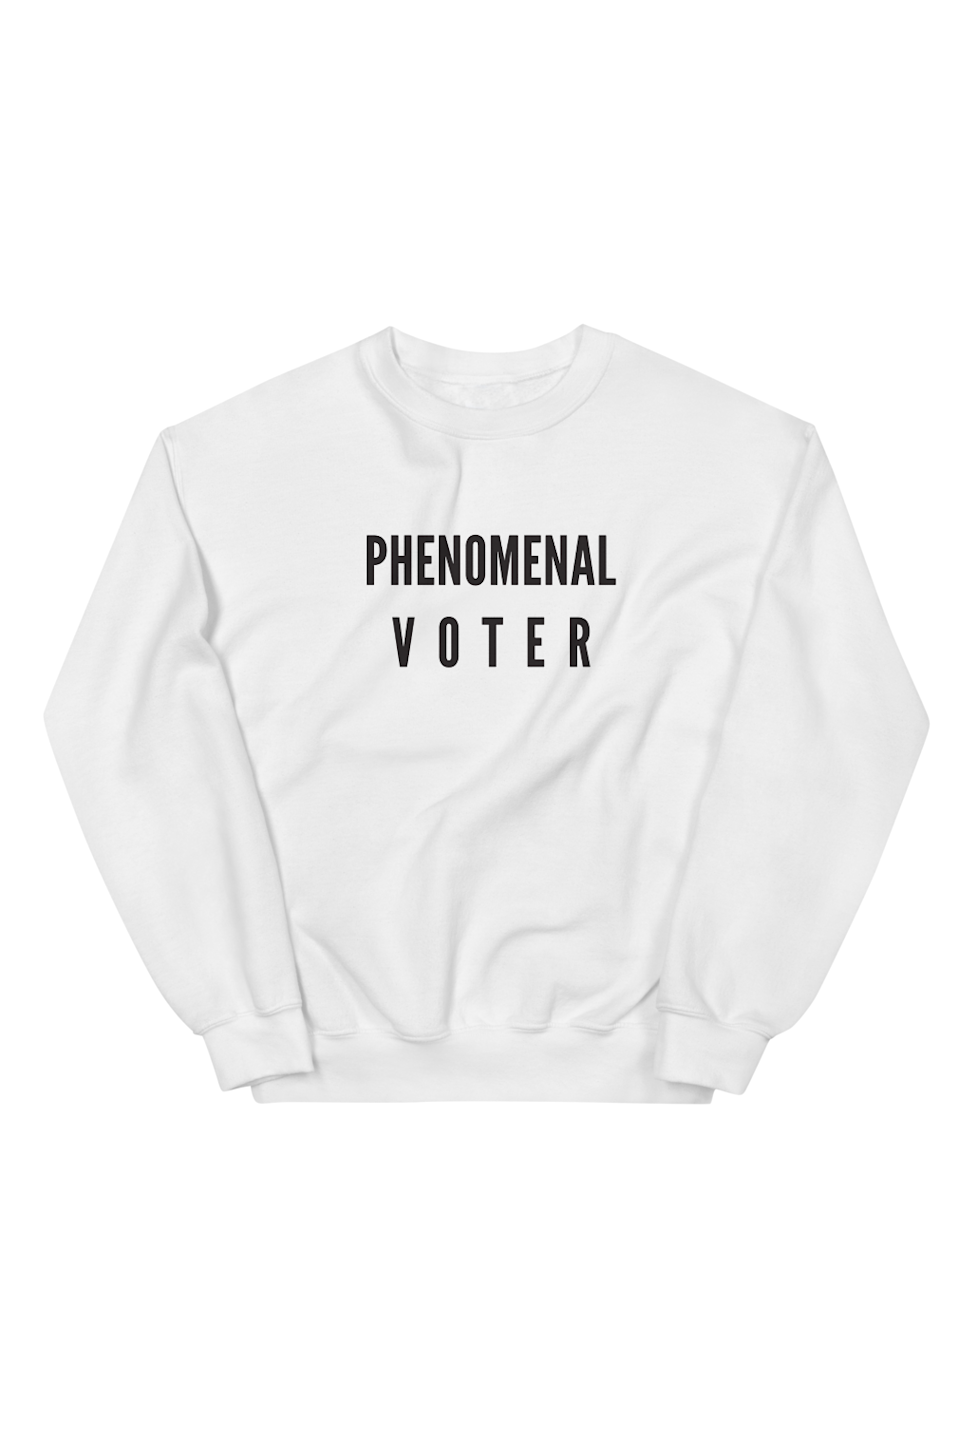 """<p><strong>Phenomenal</strong></p><p>phenomenalwoman.us</p><p><strong>$55.00</strong></p><p><a href=""""https://phenomenalwoman.us/collections/adult-collection/products/sweatshirt"""" rel=""""nofollow noopener"""" target=""""_blank"""" data-ylk=""""slk:SHOP IT"""" class=""""link rapid-noclick-resp"""">SHOP IT</a></p><p>Meena Harris, niece of Democratic VP nominee Kamala Harris, is the CEO & founder of the Phenomenal brand that supports a range of non-profits, including the <a href=""""https://blackfutureslab.org/"""" rel=""""nofollow noopener"""" target=""""_blank"""" data-ylk=""""slk:Black Futures Lab"""" class=""""link rapid-noclick-resp"""">Black Futures Lab</a>, <a href=""""https://justice4women.org/"""" rel=""""nofollow noopener"""" target=""""_blank"""" data-ylk=""""slk:Justice for Migrant Women"""" class=""""link rapid-noclick-resp"""">Justice for Migrant Women</a>, and <a href=""""https://www.cair.com/"""" rel=""""nofollow noopener"""" target=""""_blank"""" data-ylk=""""slk:The Council on American-Islamic Relations"""" class=""""link rapid-noclick-resp"""">The Council on American-Islamic Relations</a>. Purchasing this """"Phenomenal Voter"""" sweatshirt is the perfect way to contribute to Harris' brand, as well as these other organizations. </p>"""